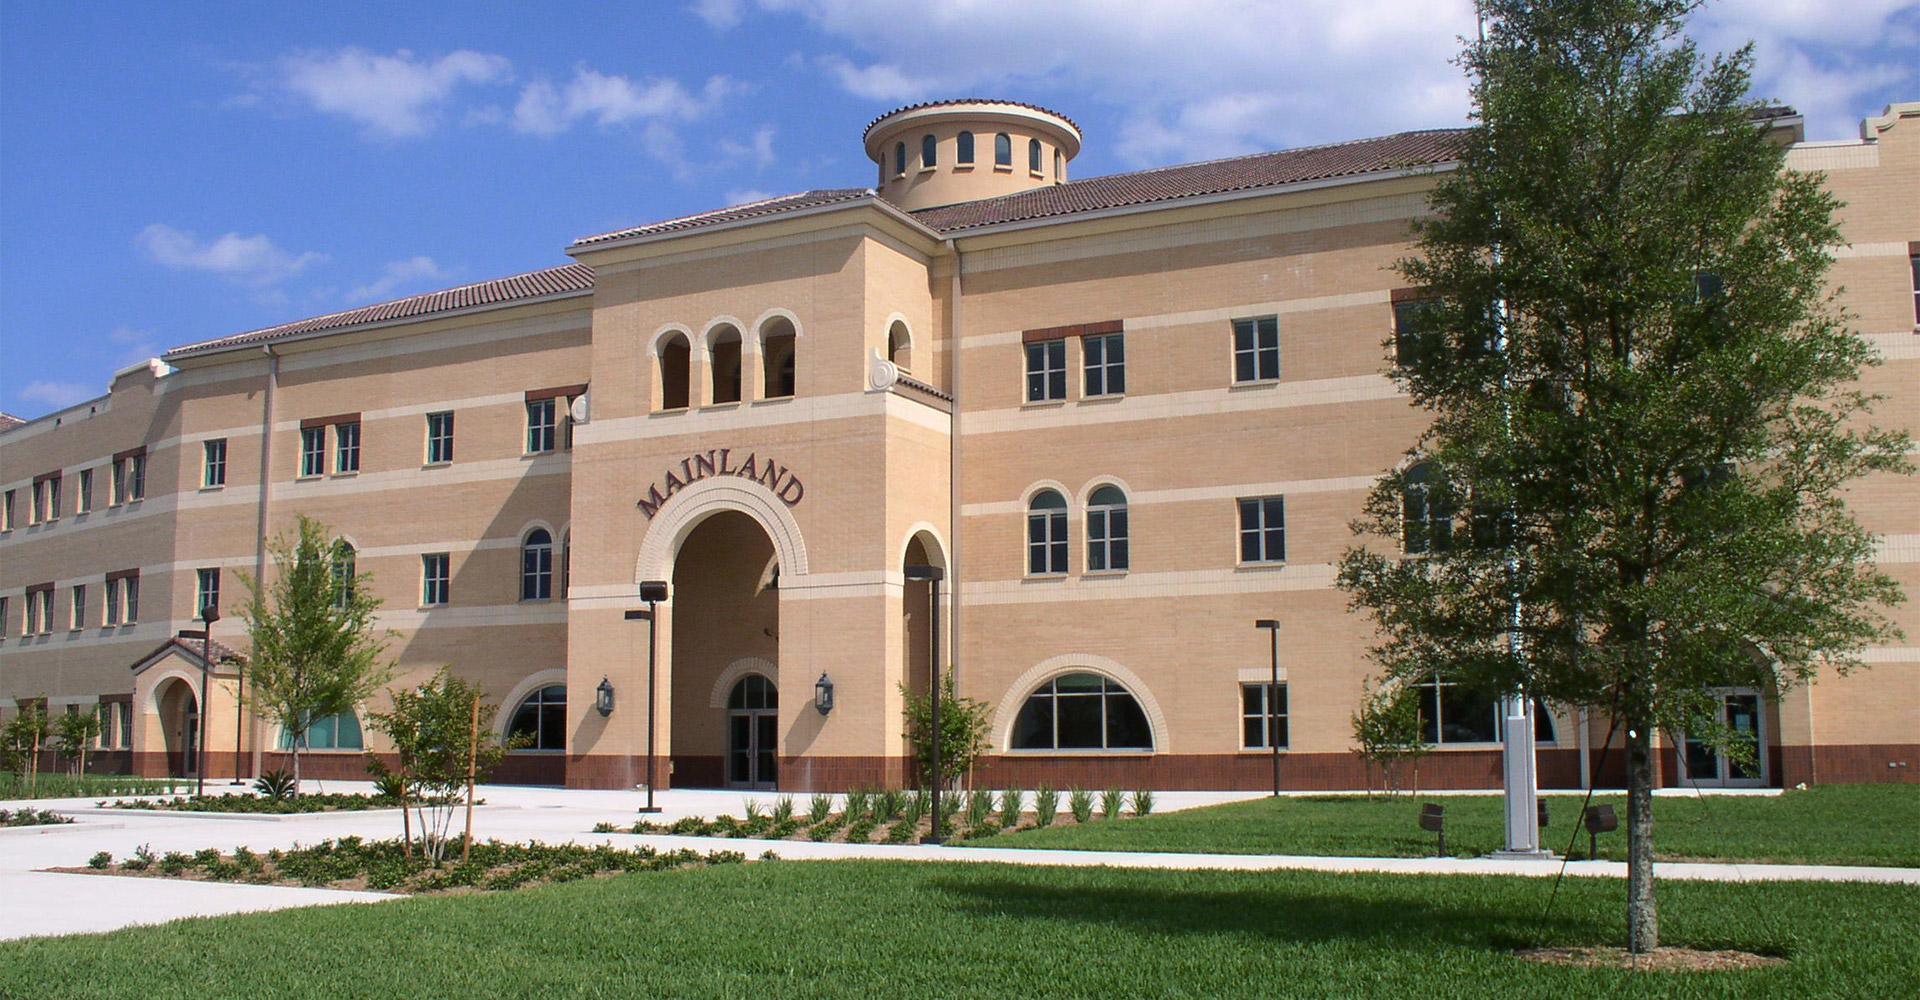 Exterior of Mainland High School.